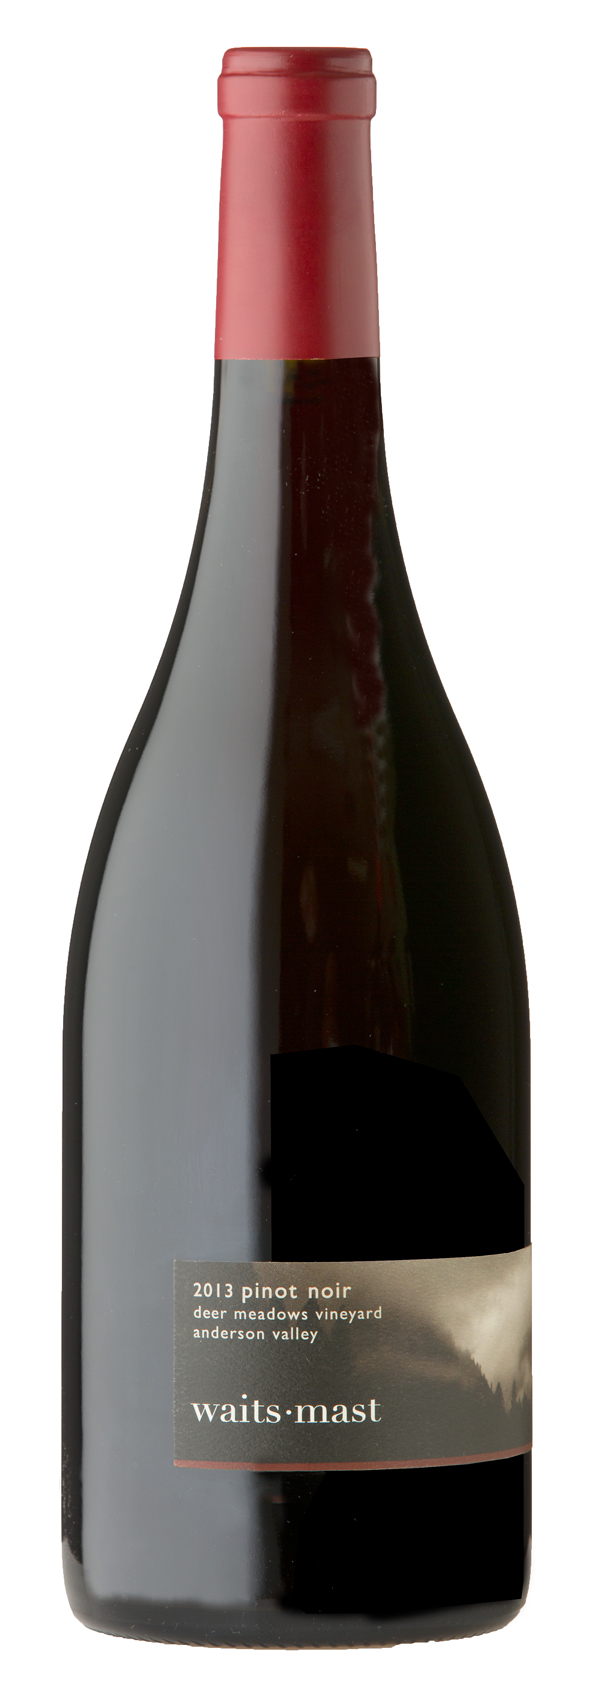 2013 Waits-Mast Pinot Noir, Deer Meadows Vineyard, Anderson Valley MAIN